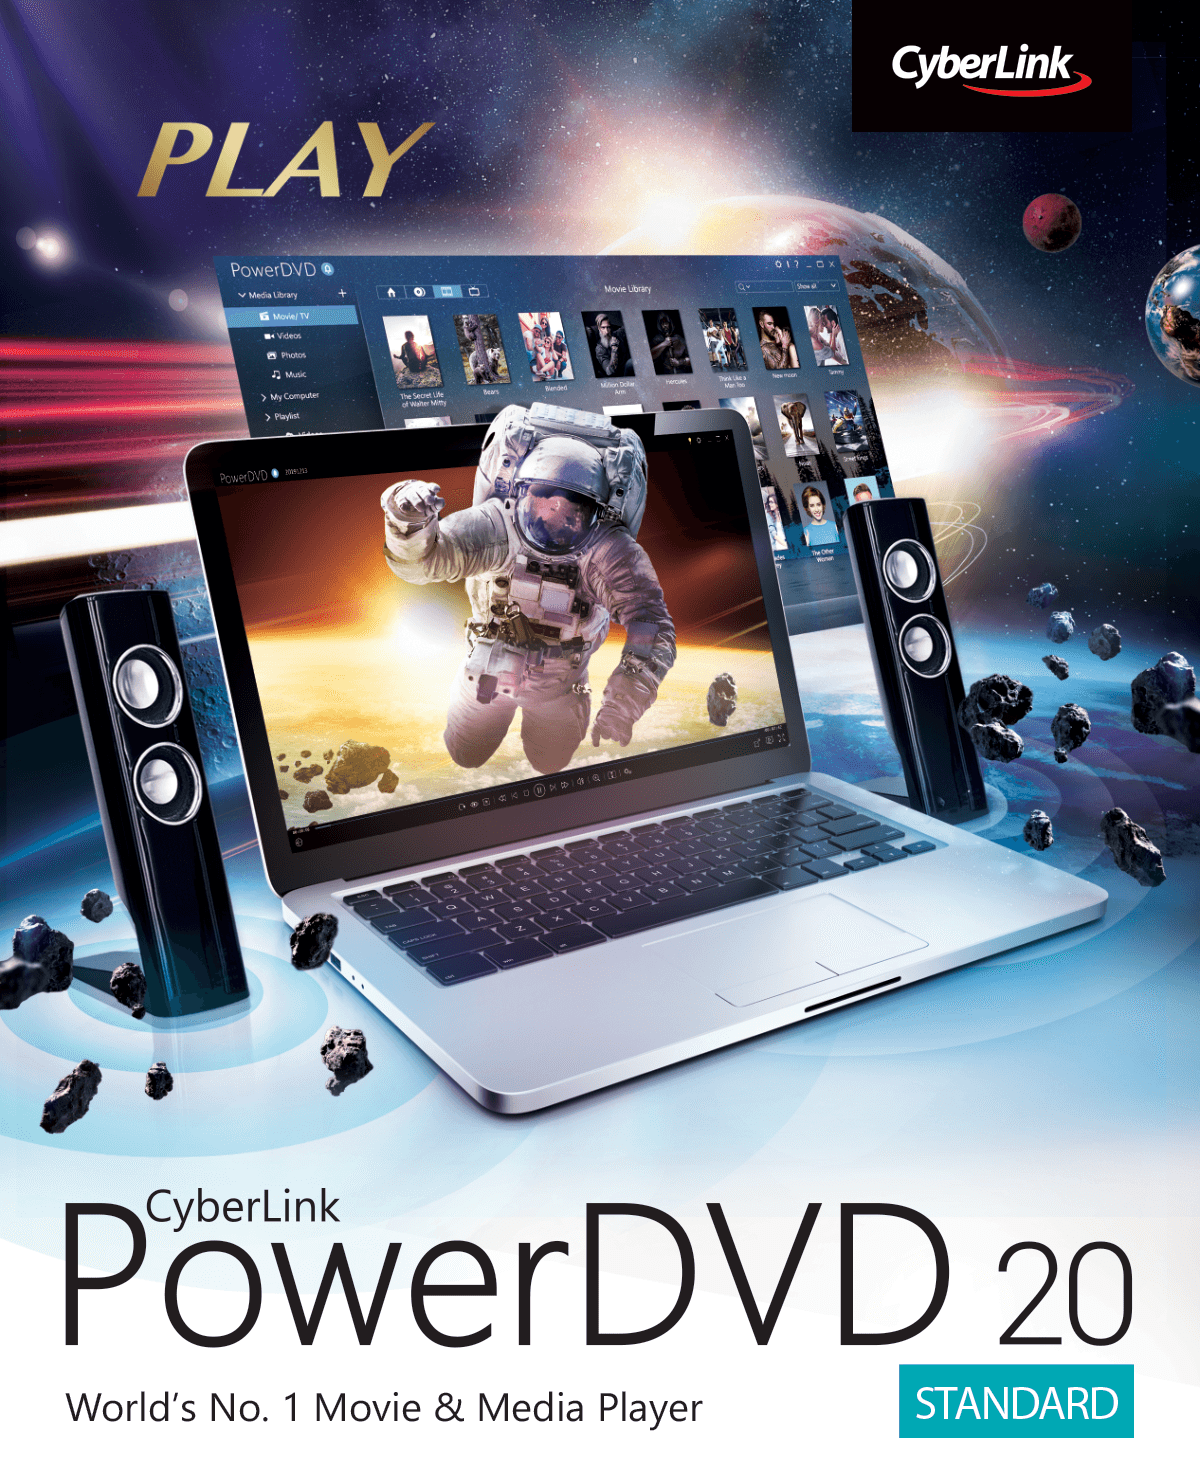 PowerDVD 20 Standard – The Best Media Player